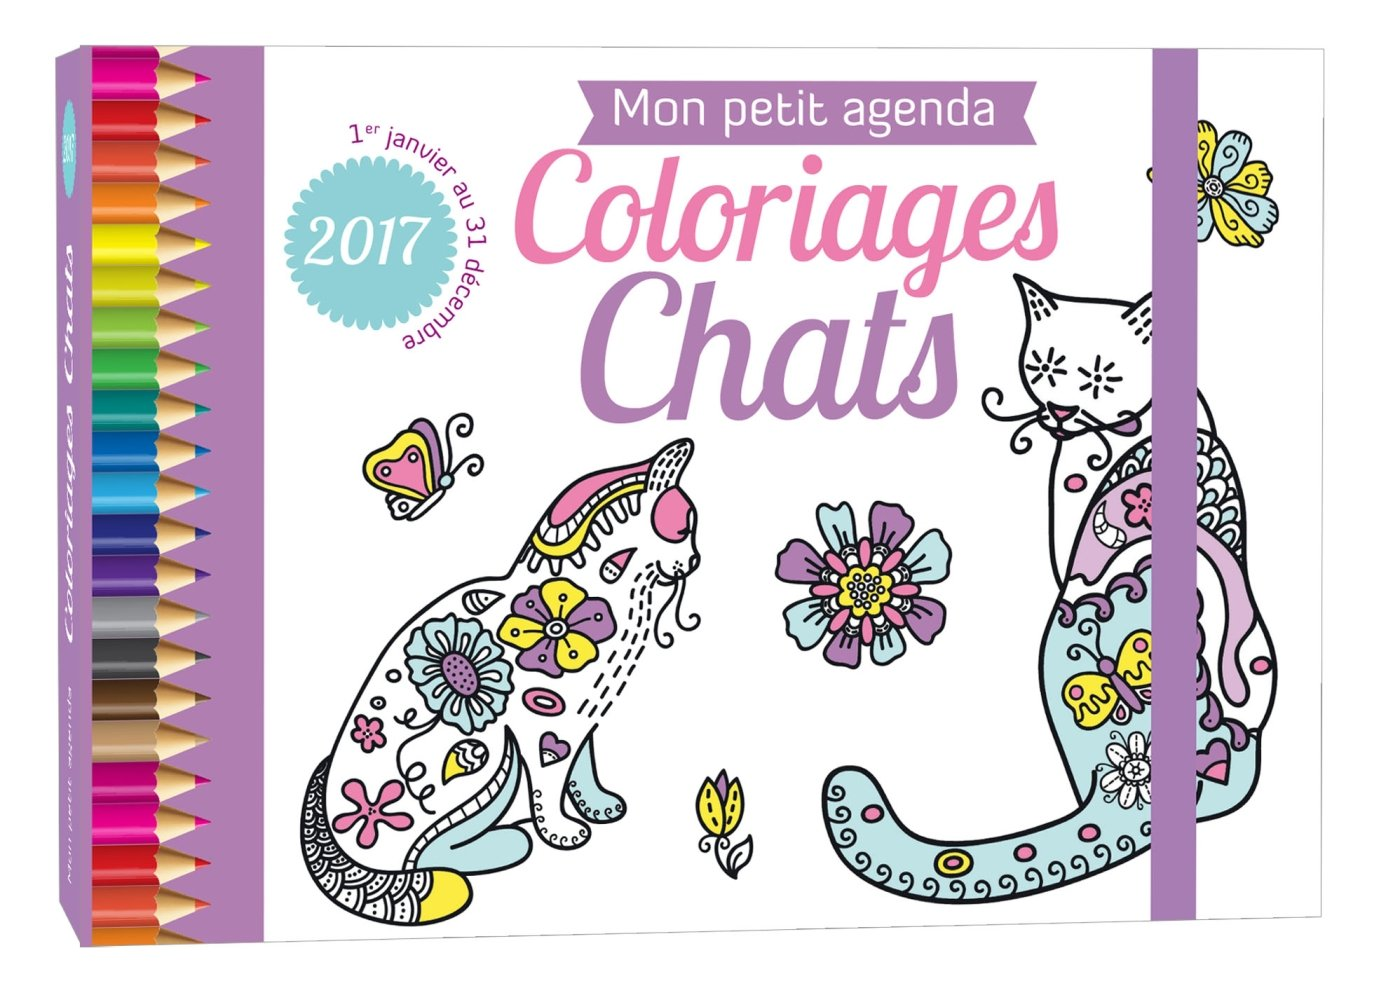 Mon Petit Agenda Coloriages Chats Editions 365 9782351558379